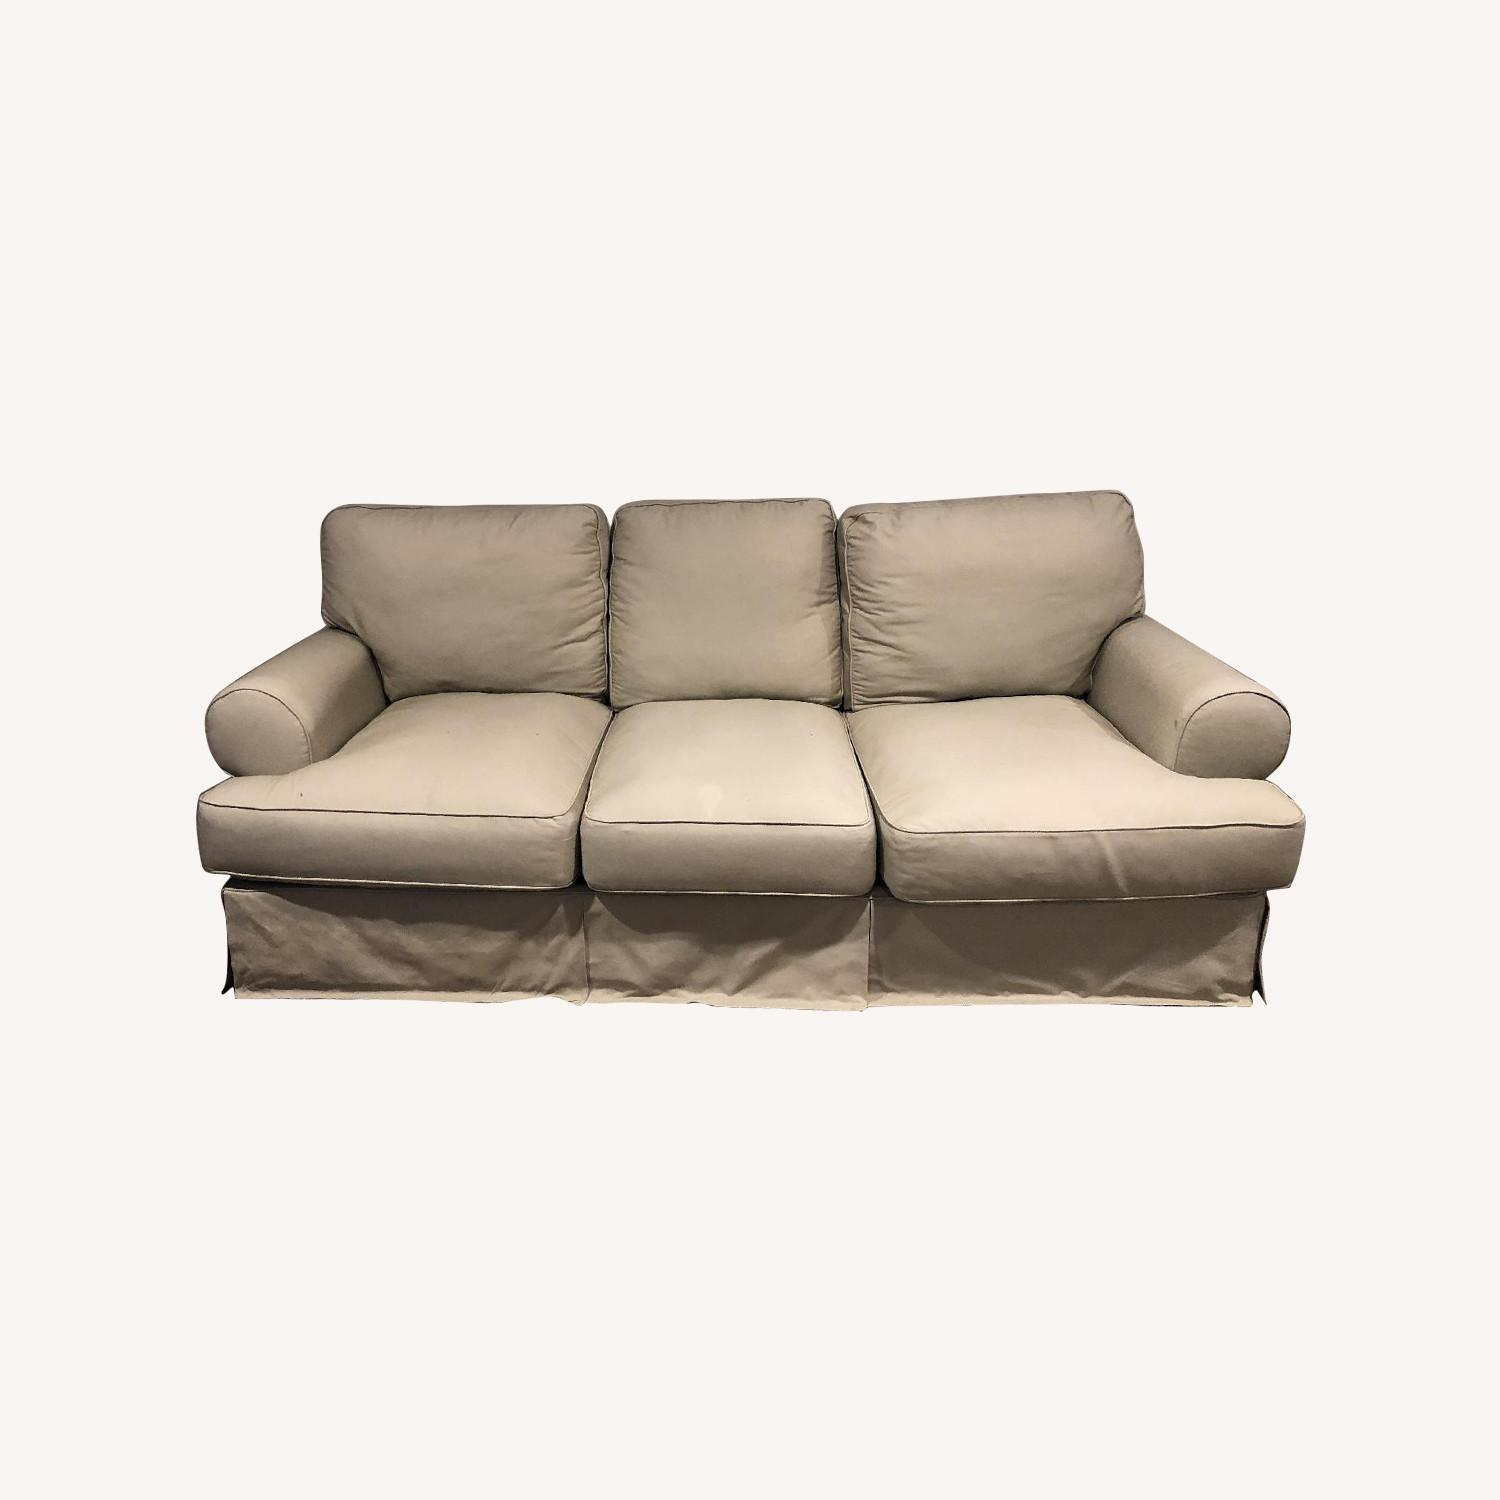 Ashley Beige Slipcovered Sofa - image-0